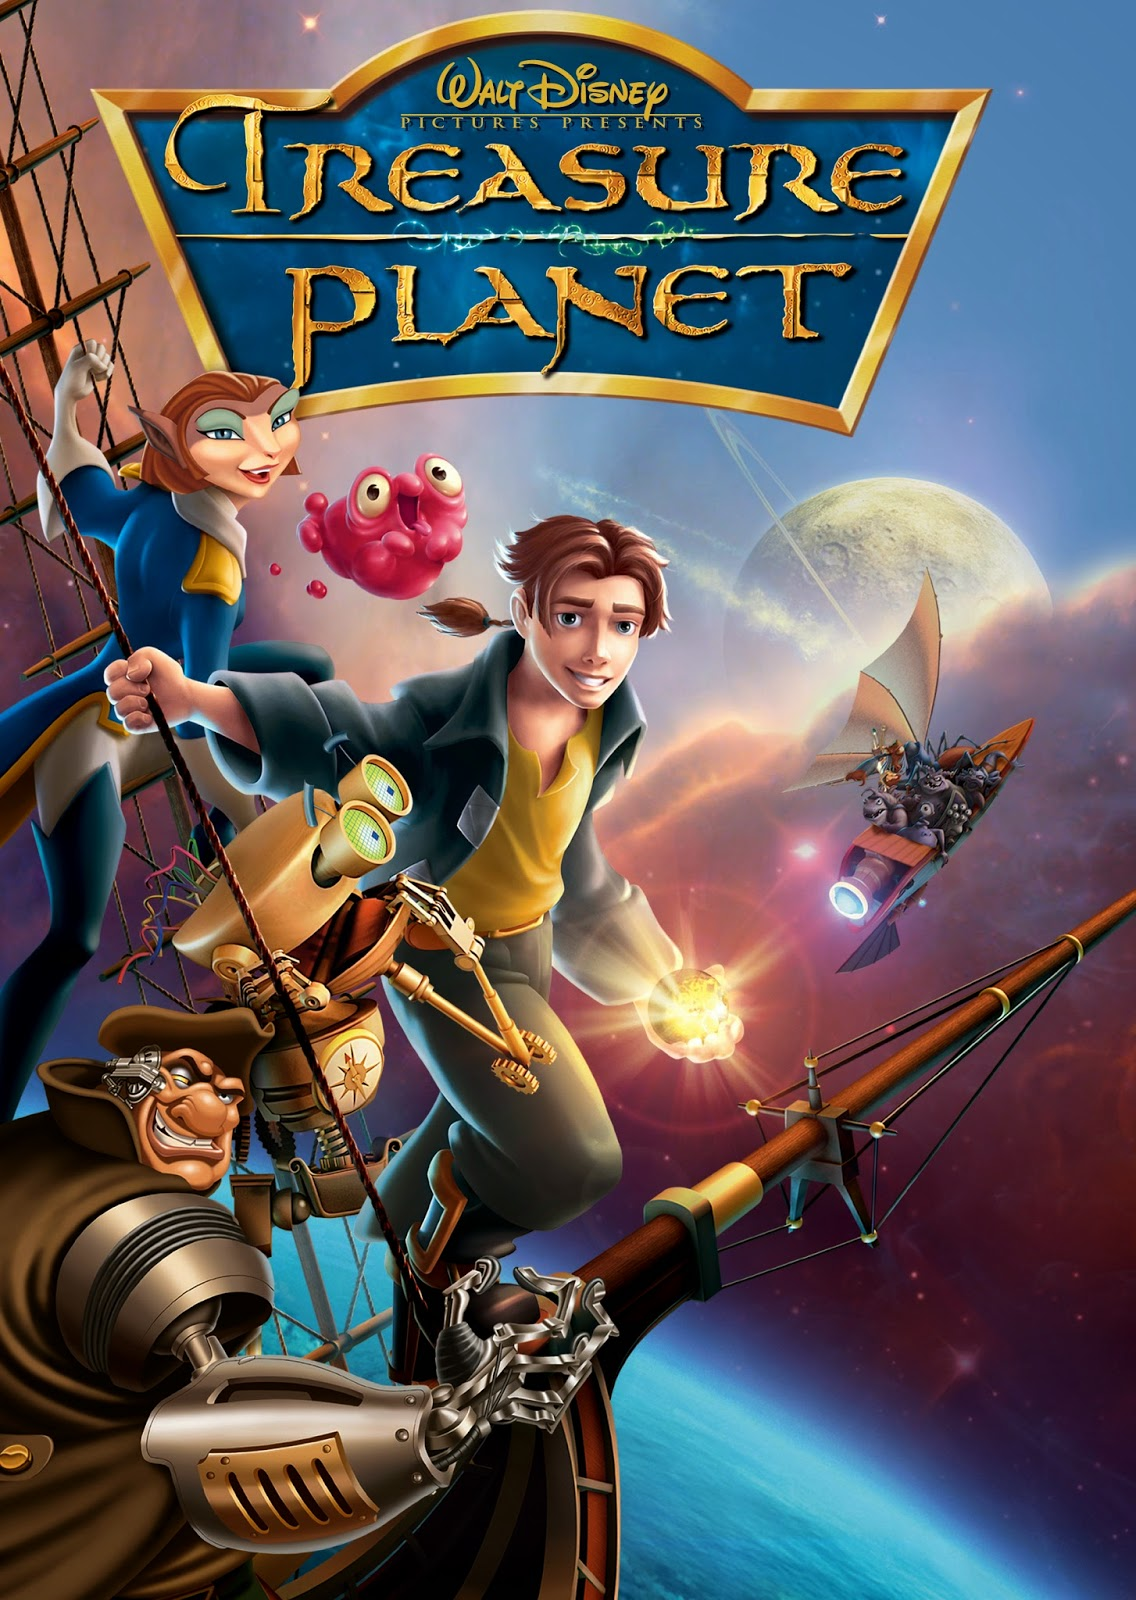 Treasure-Planet-2002-Disney-Movie